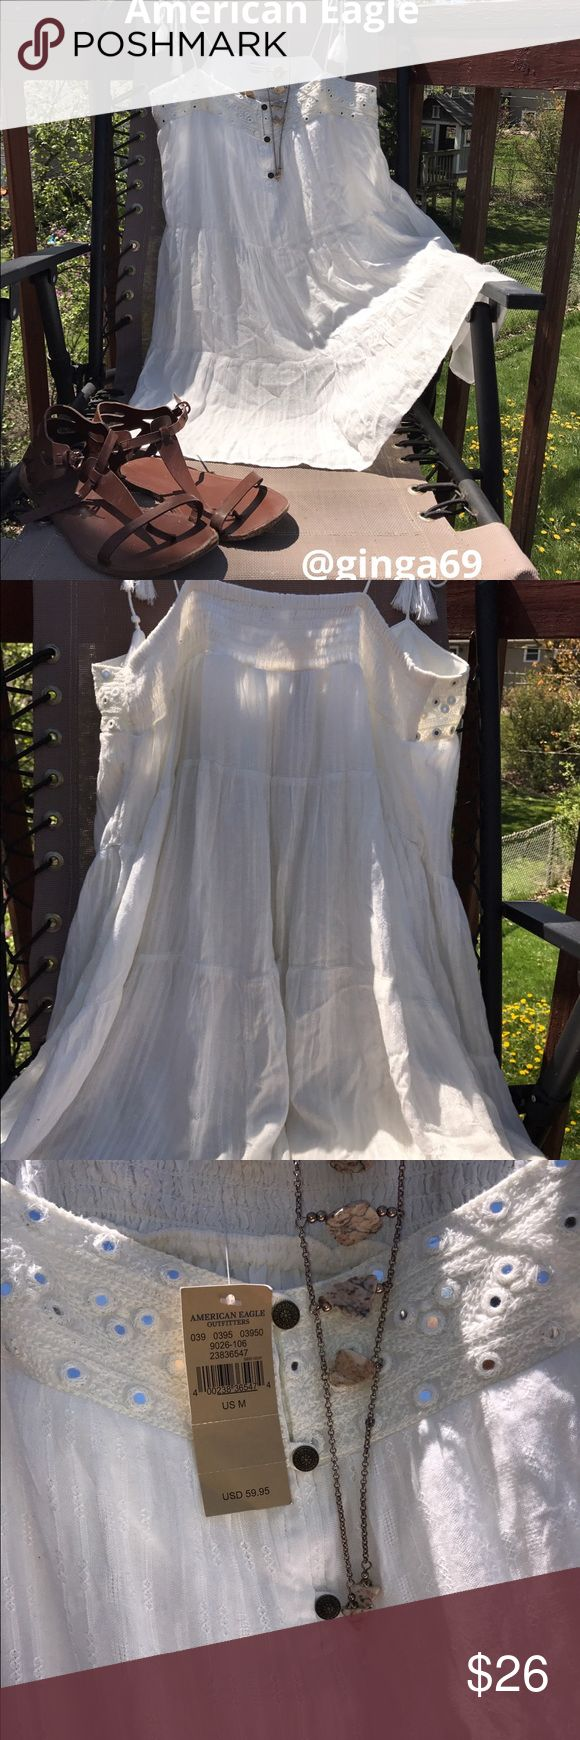 American Eagle sun dress 👗 (M) American Eagle ADORABLE white sundress ☀️. Size (M) with adjustable straps . NWT. American Eagle Outfitters Dresses Mini